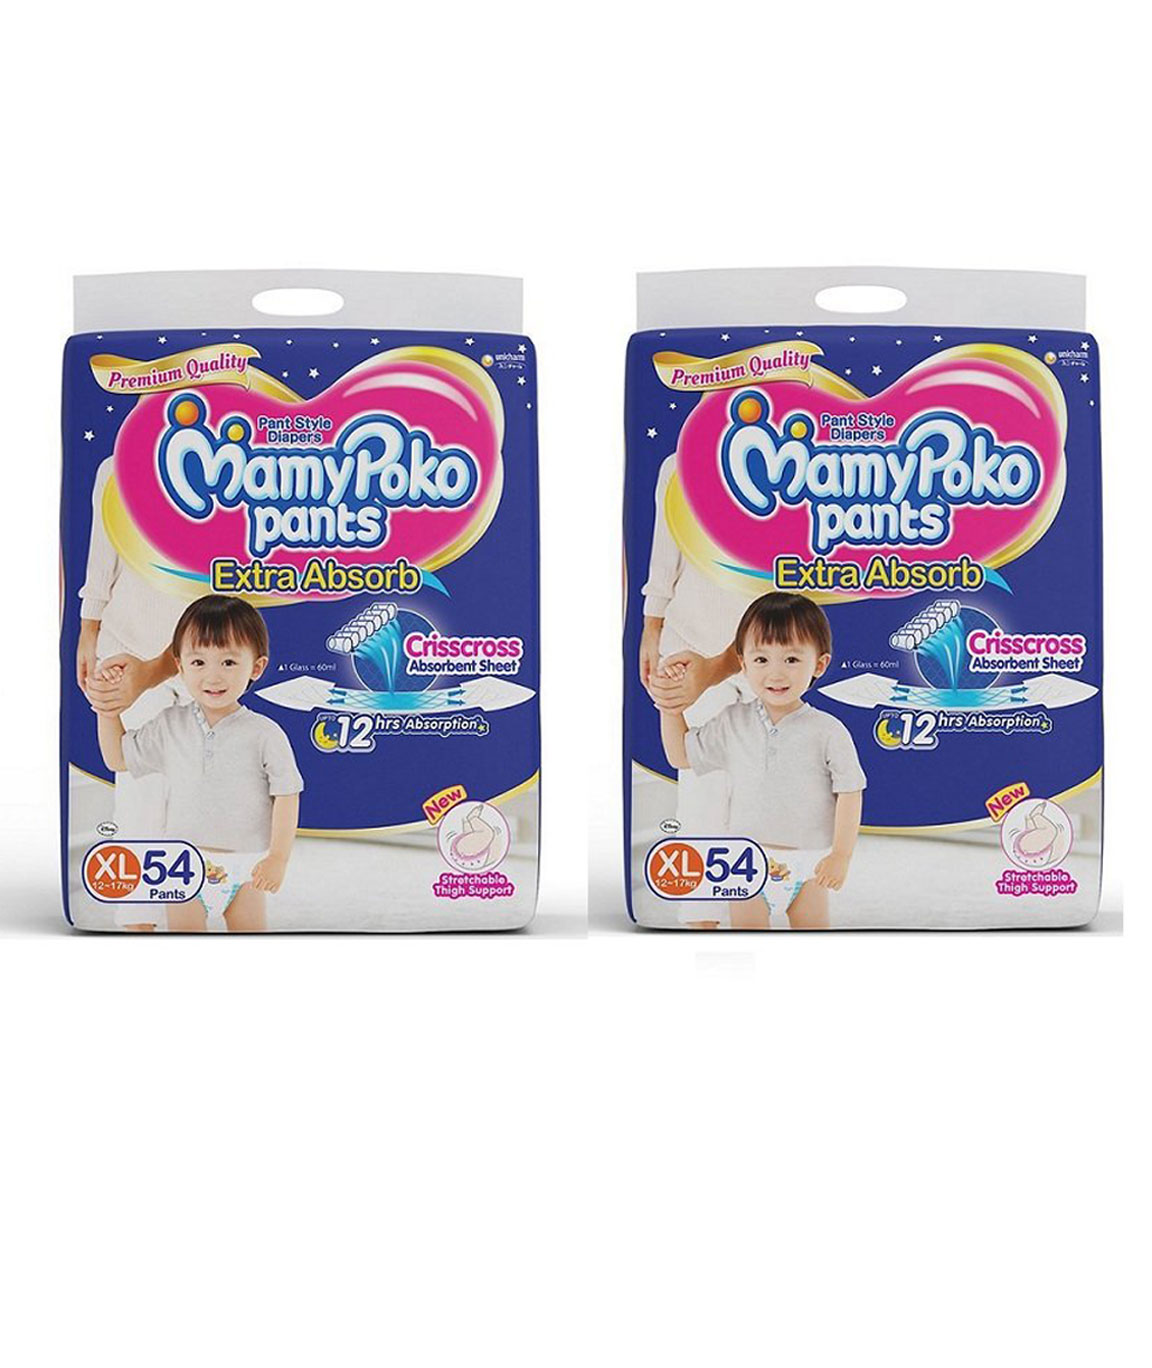 Mamy Poko Pants (White XL) -54 Diapers Each Pack of 2